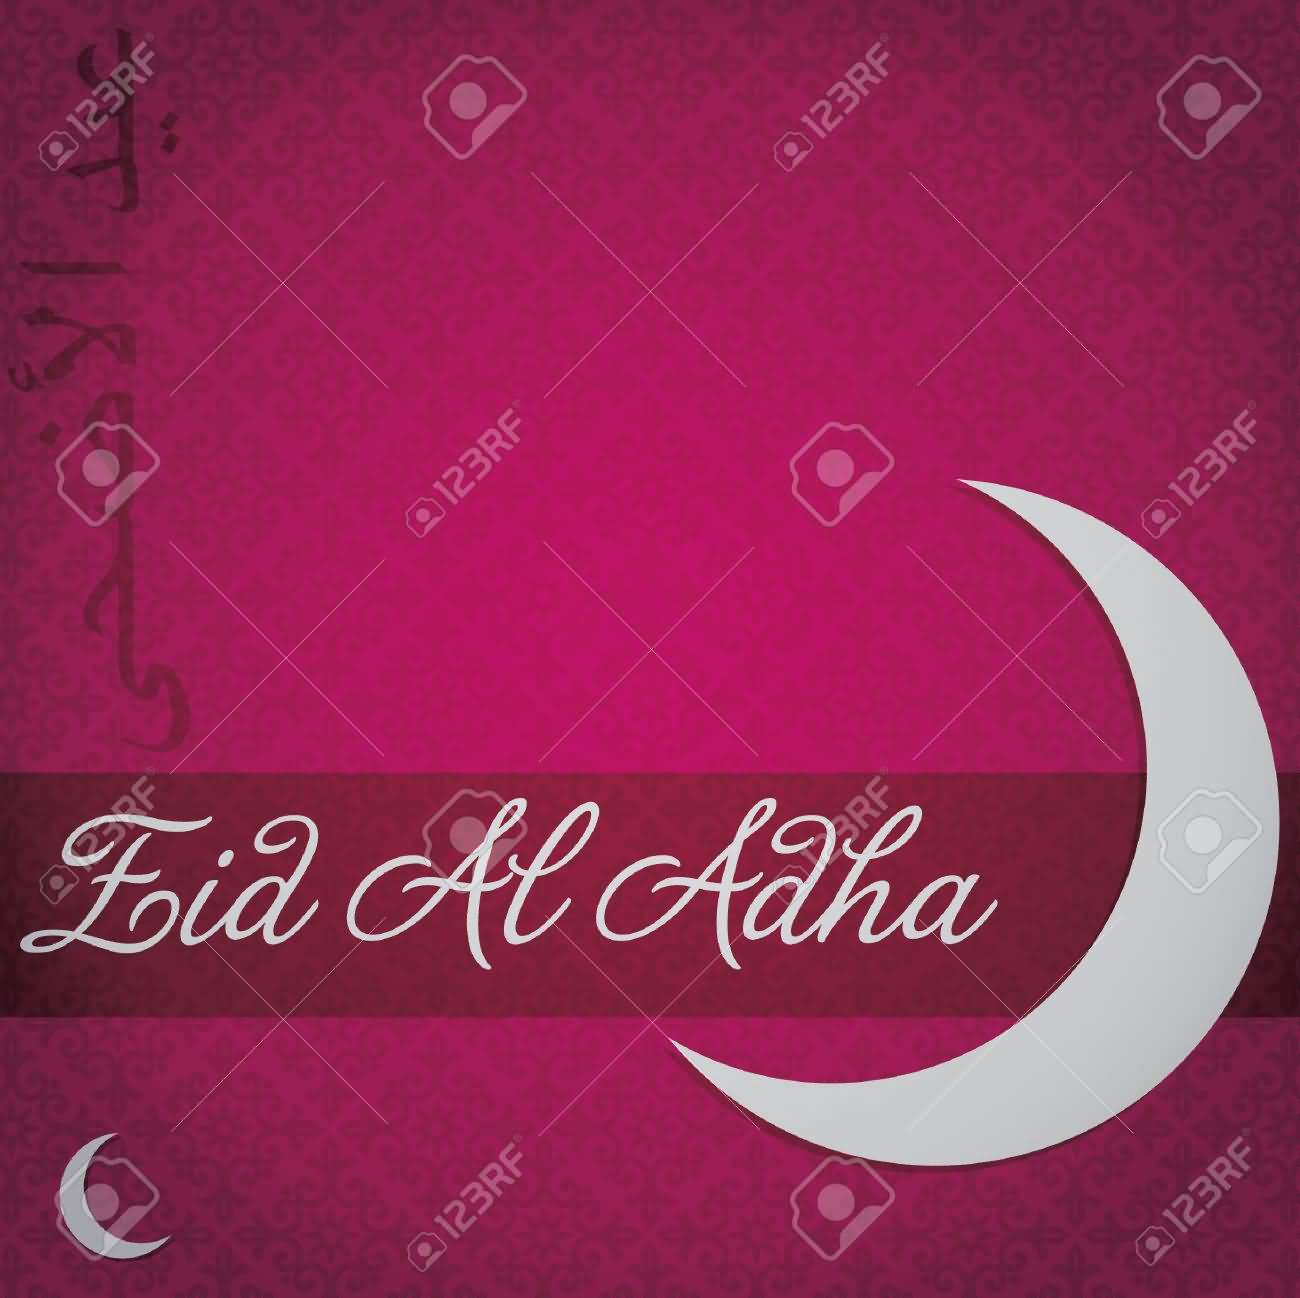 65 Best Eid Ul Adha 2016 Greeting Photos And Images